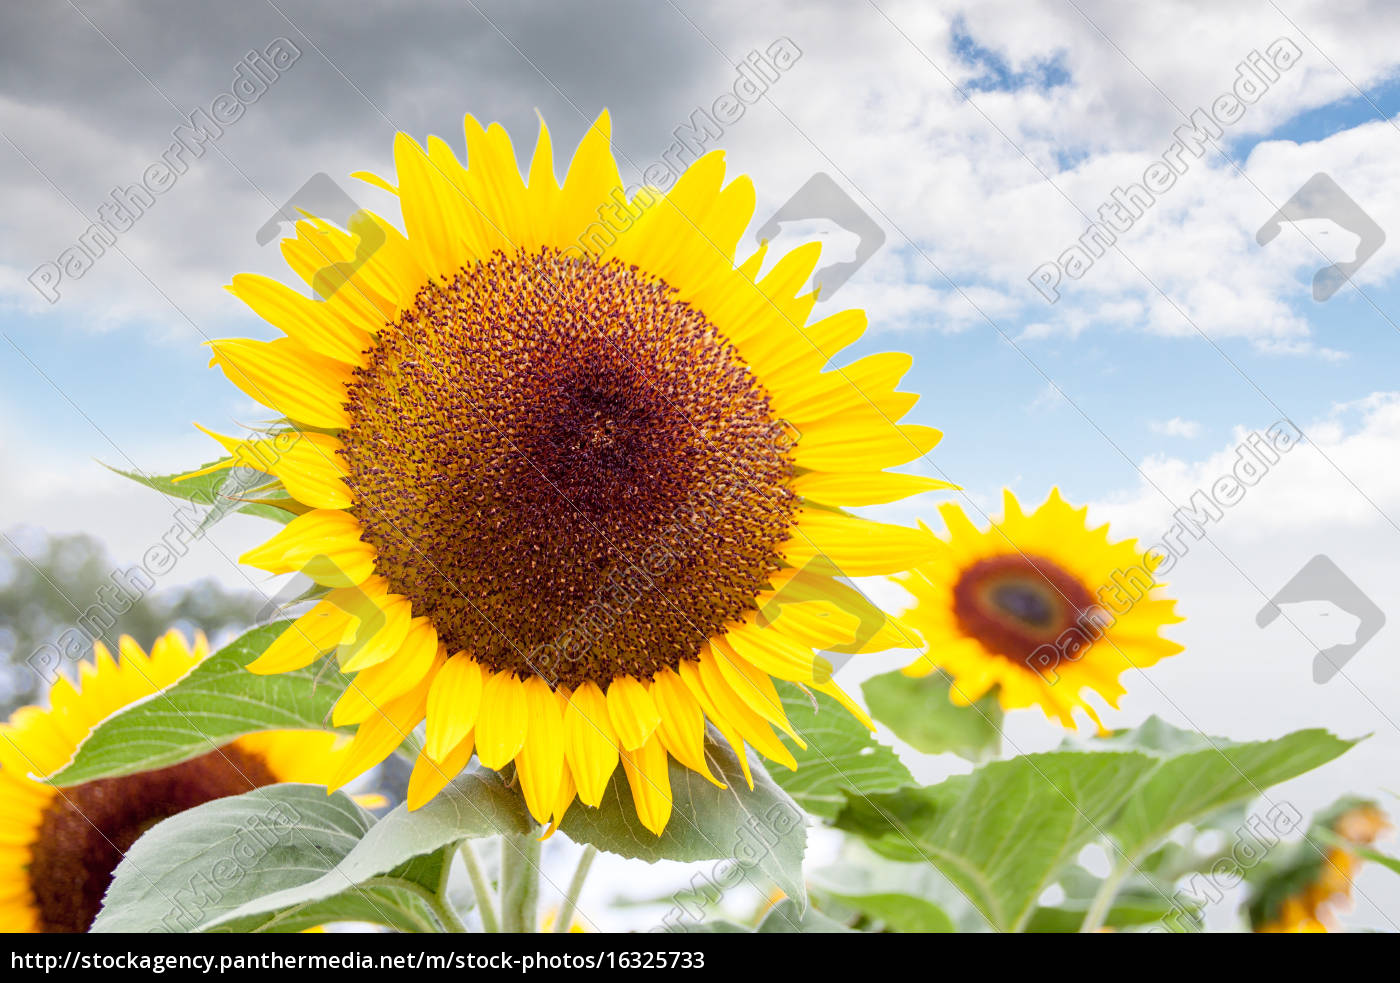 bright, yellow, of, a, sunflower, against - 16325733